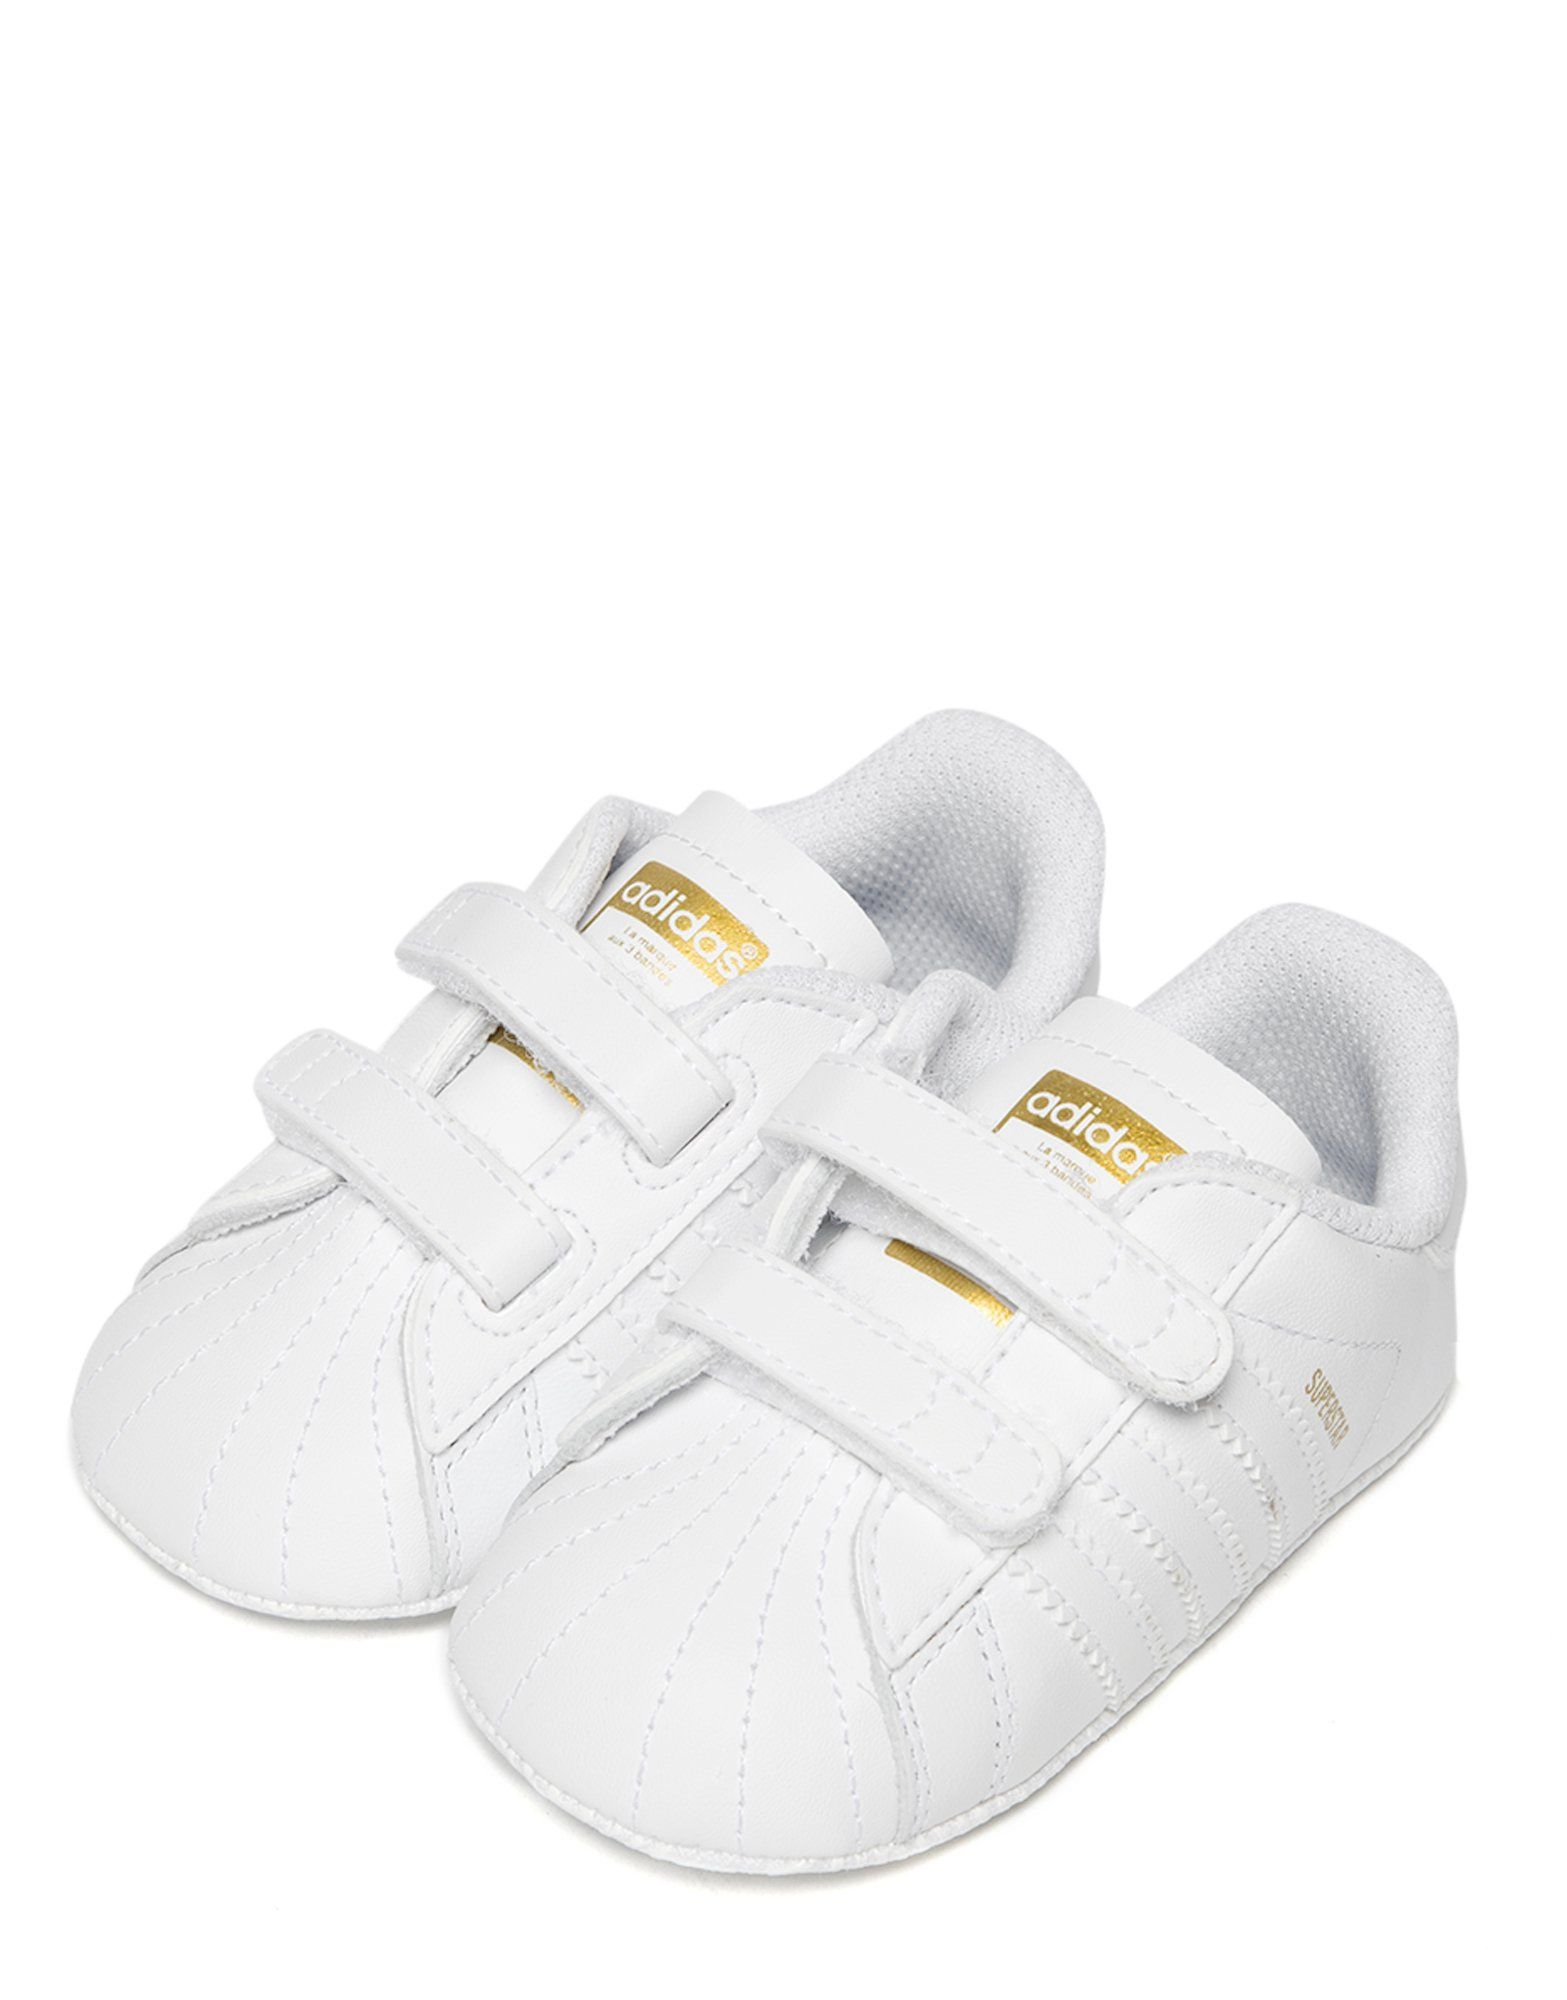 adidas originals superstar shelltoe baby girls white pink crib shoe ... 0a016d532